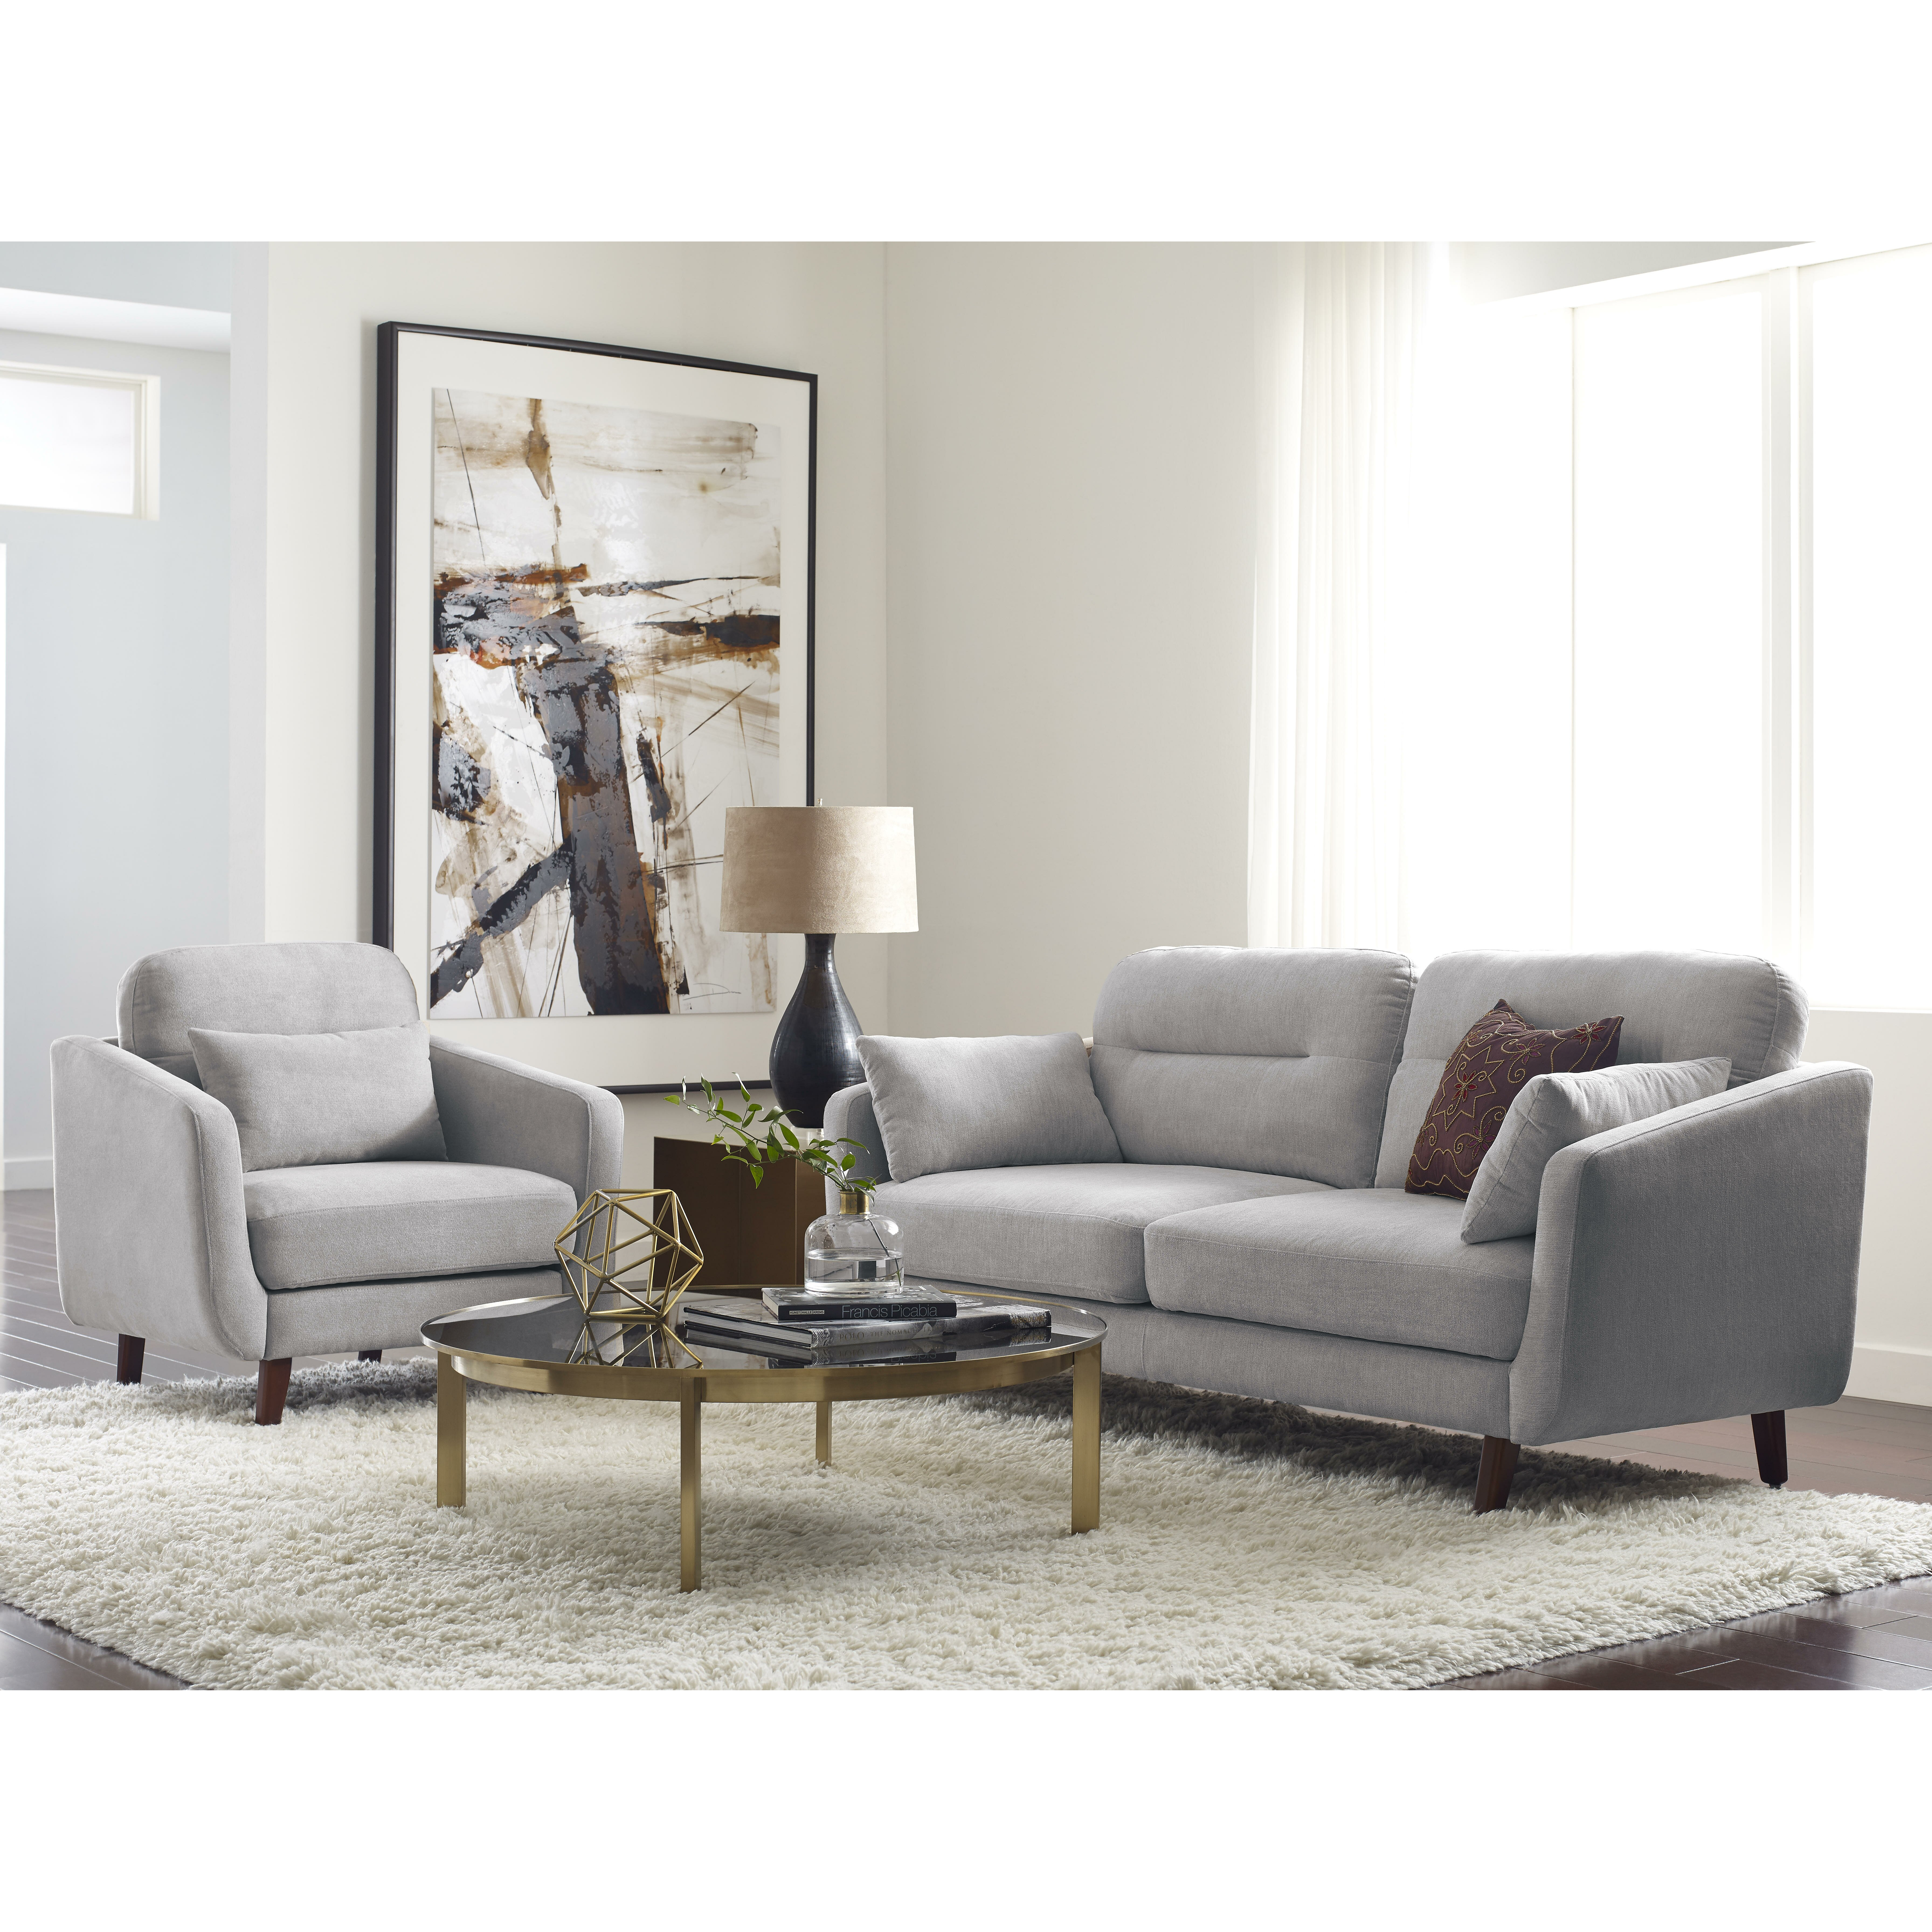 Serta at home sierra living room collection